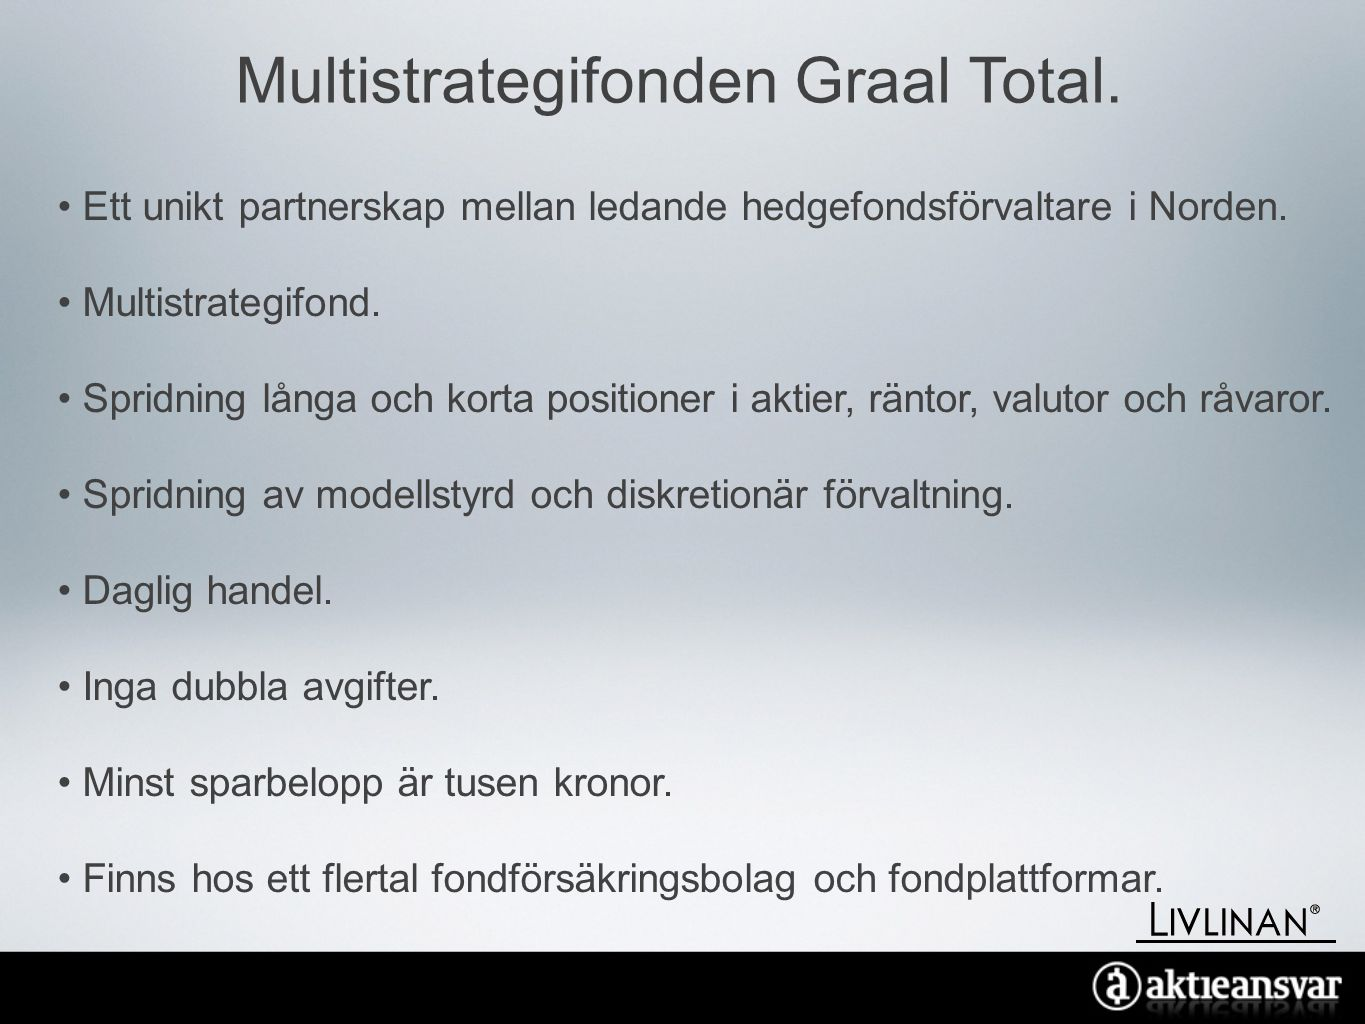 Multistrategifonden Graal Total.